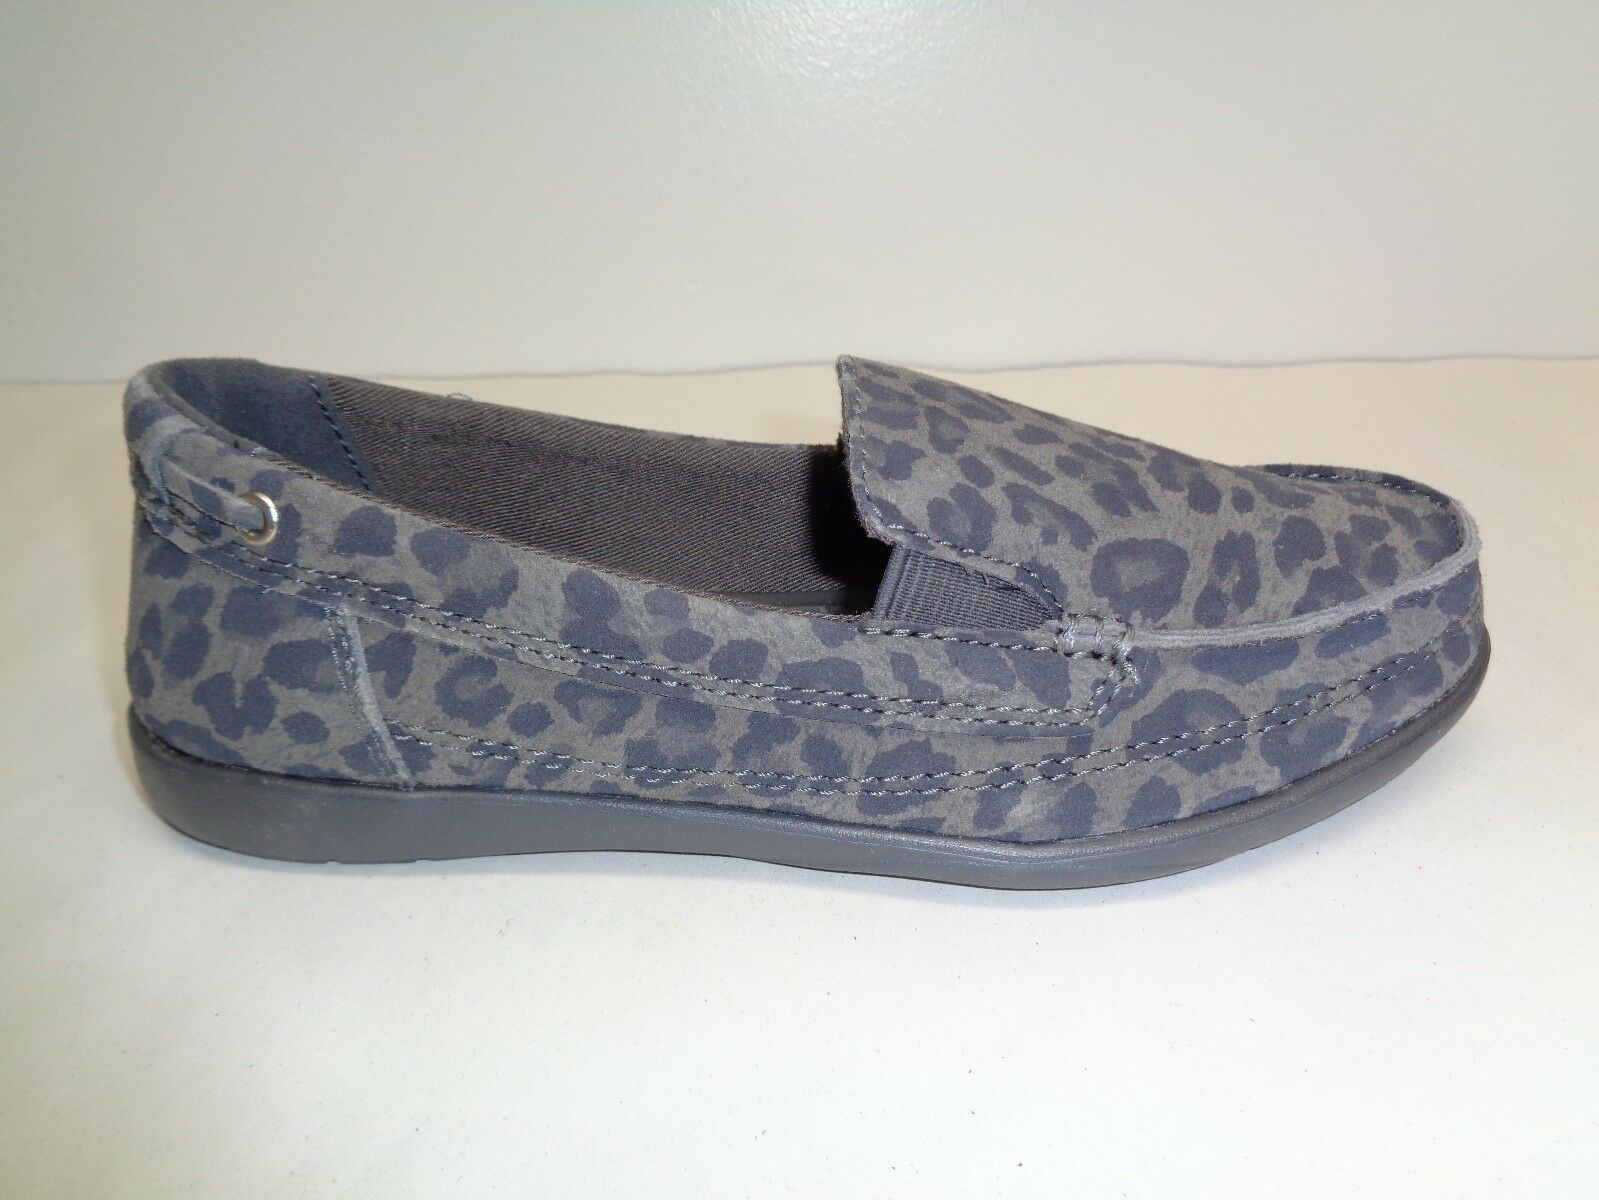 Crocs Size 5 WALU Light Grey Leopard Print Suede Loafers New Womens Boat shoes